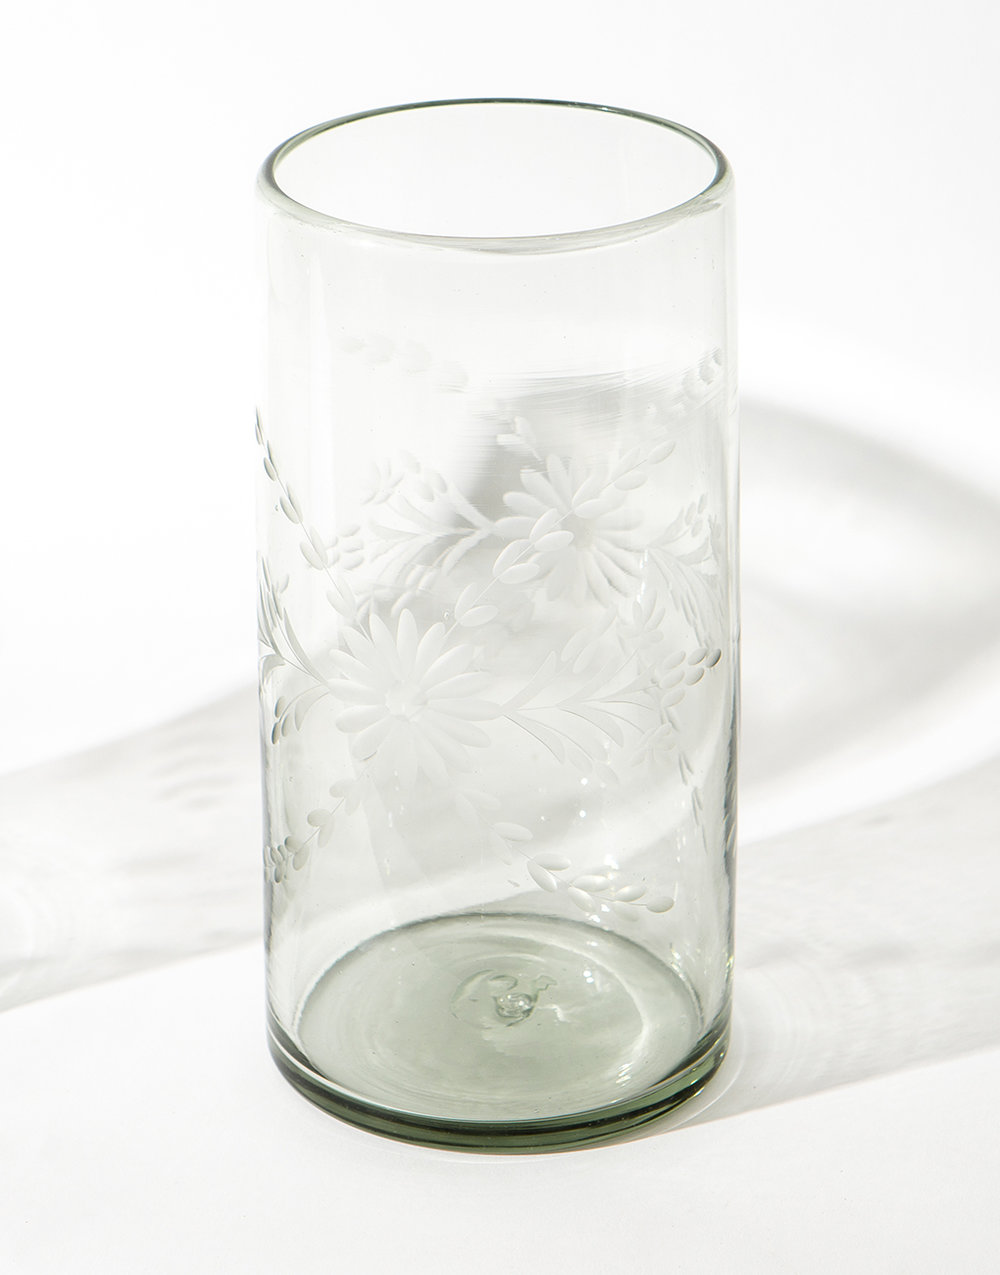 Large-Clear-Flower-Glass-Vase-2-{The-Little-Market}.jpg